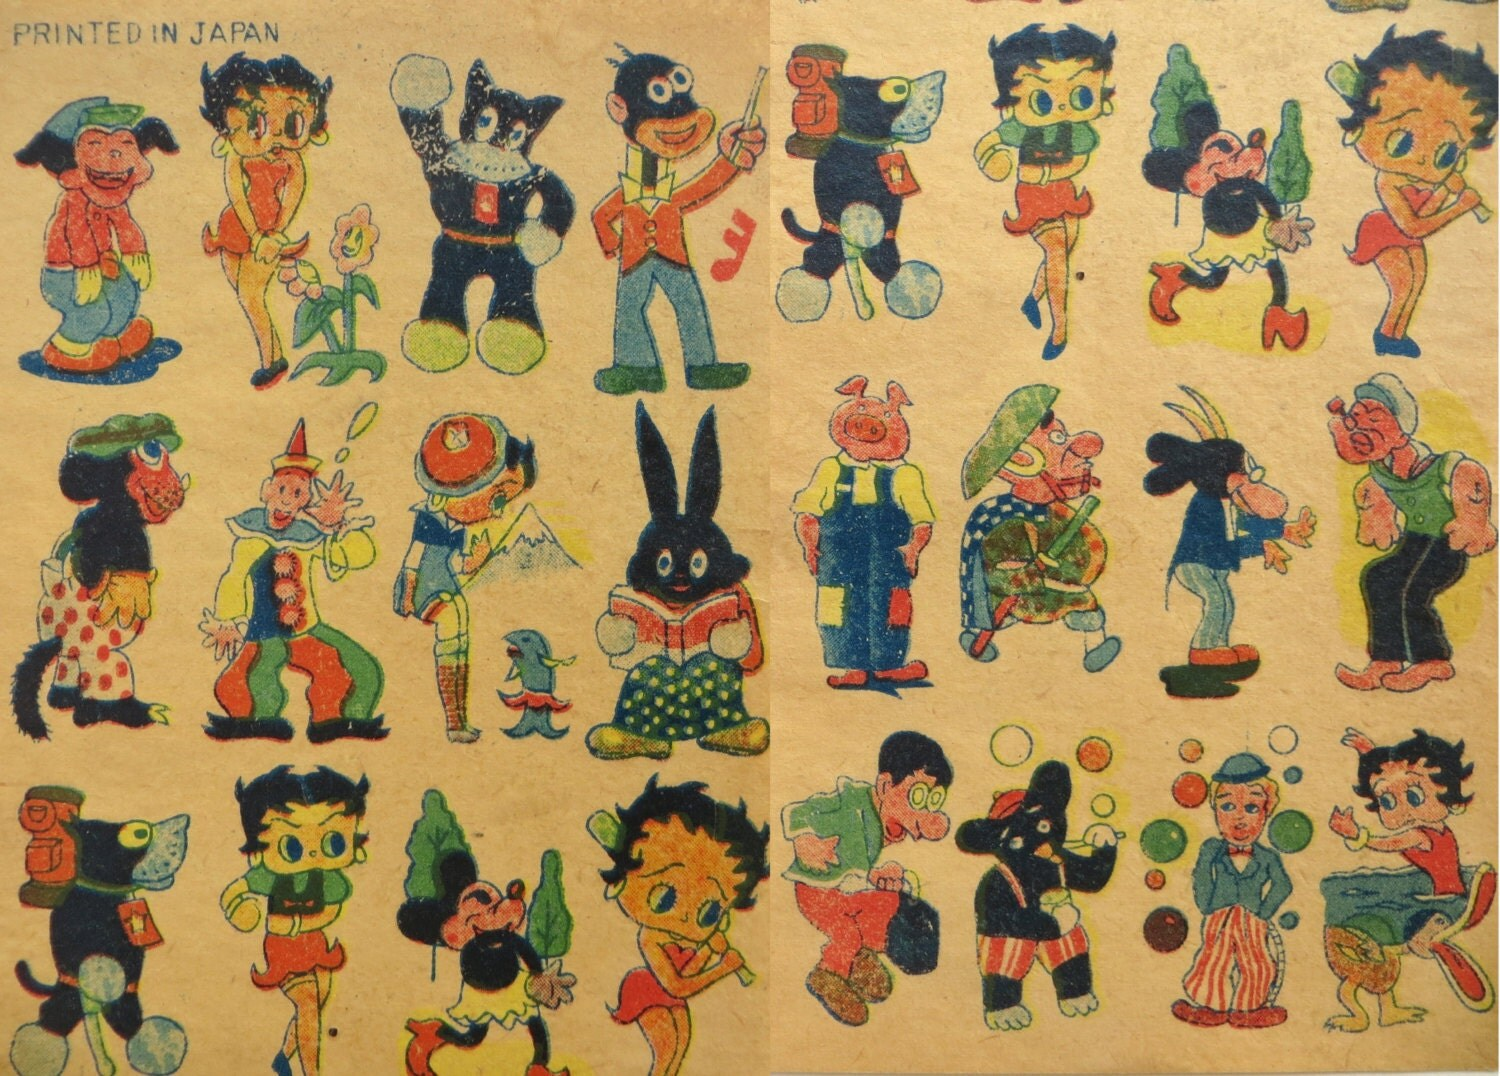 Antique Japanese Cartoon Tattoo Flash Art Rare Odd 1930S Ideas And Designs